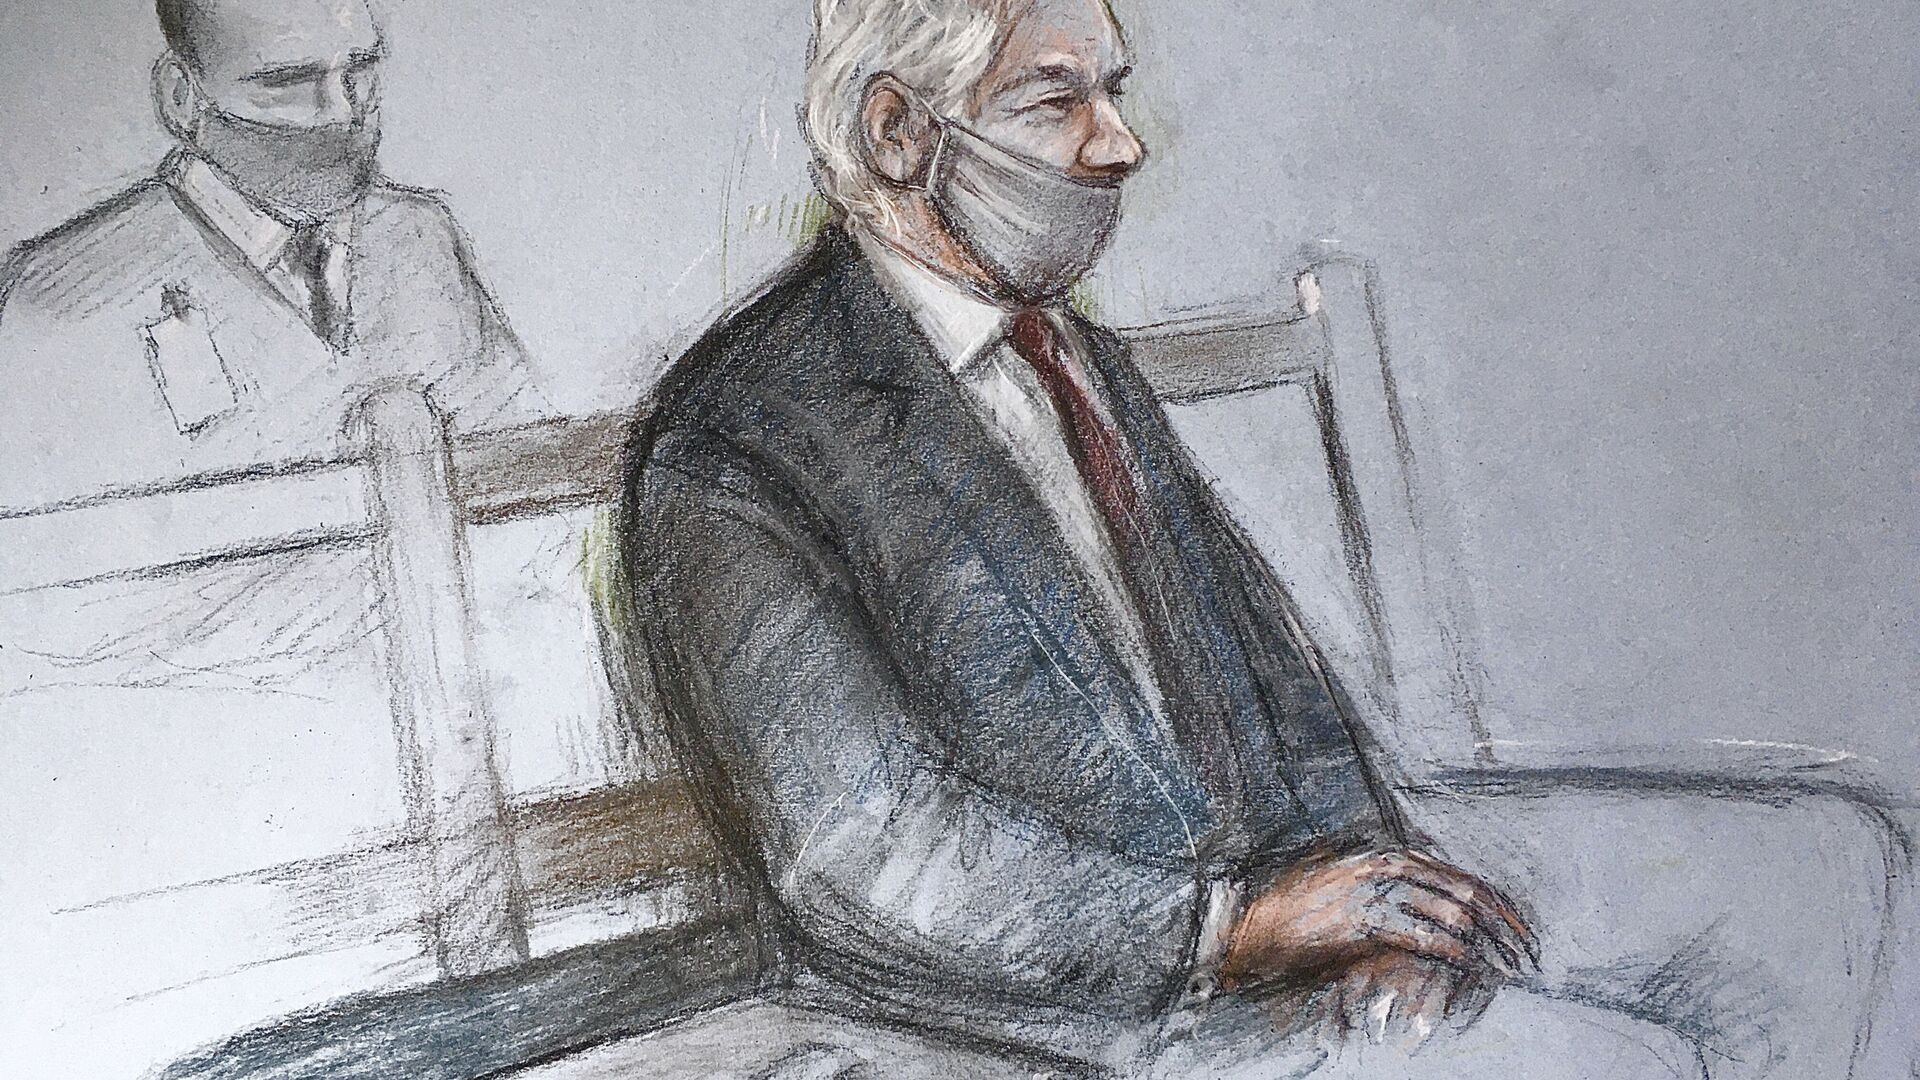 """This is a court artist sketch by Elizabeth Cook of Julian Assange appearing at the Old Bailey in London for the ruling in his extradition case, in London, Monday, Jan. 4, 2021. A British judge has rejected the United States' request to extradite WikiLeaks founder Julian Assange to face espionage charges, saying it would be """"oppressive"""" because of his mental health. District Judge Vanessa Baraitser said Assange was likely to kill himself if sent to the U.S. The U.S. government said it would appeal the decision.  (Elizabeth Cook/PA via AP) - Sputnik International, 1920, 11.08.2021"""